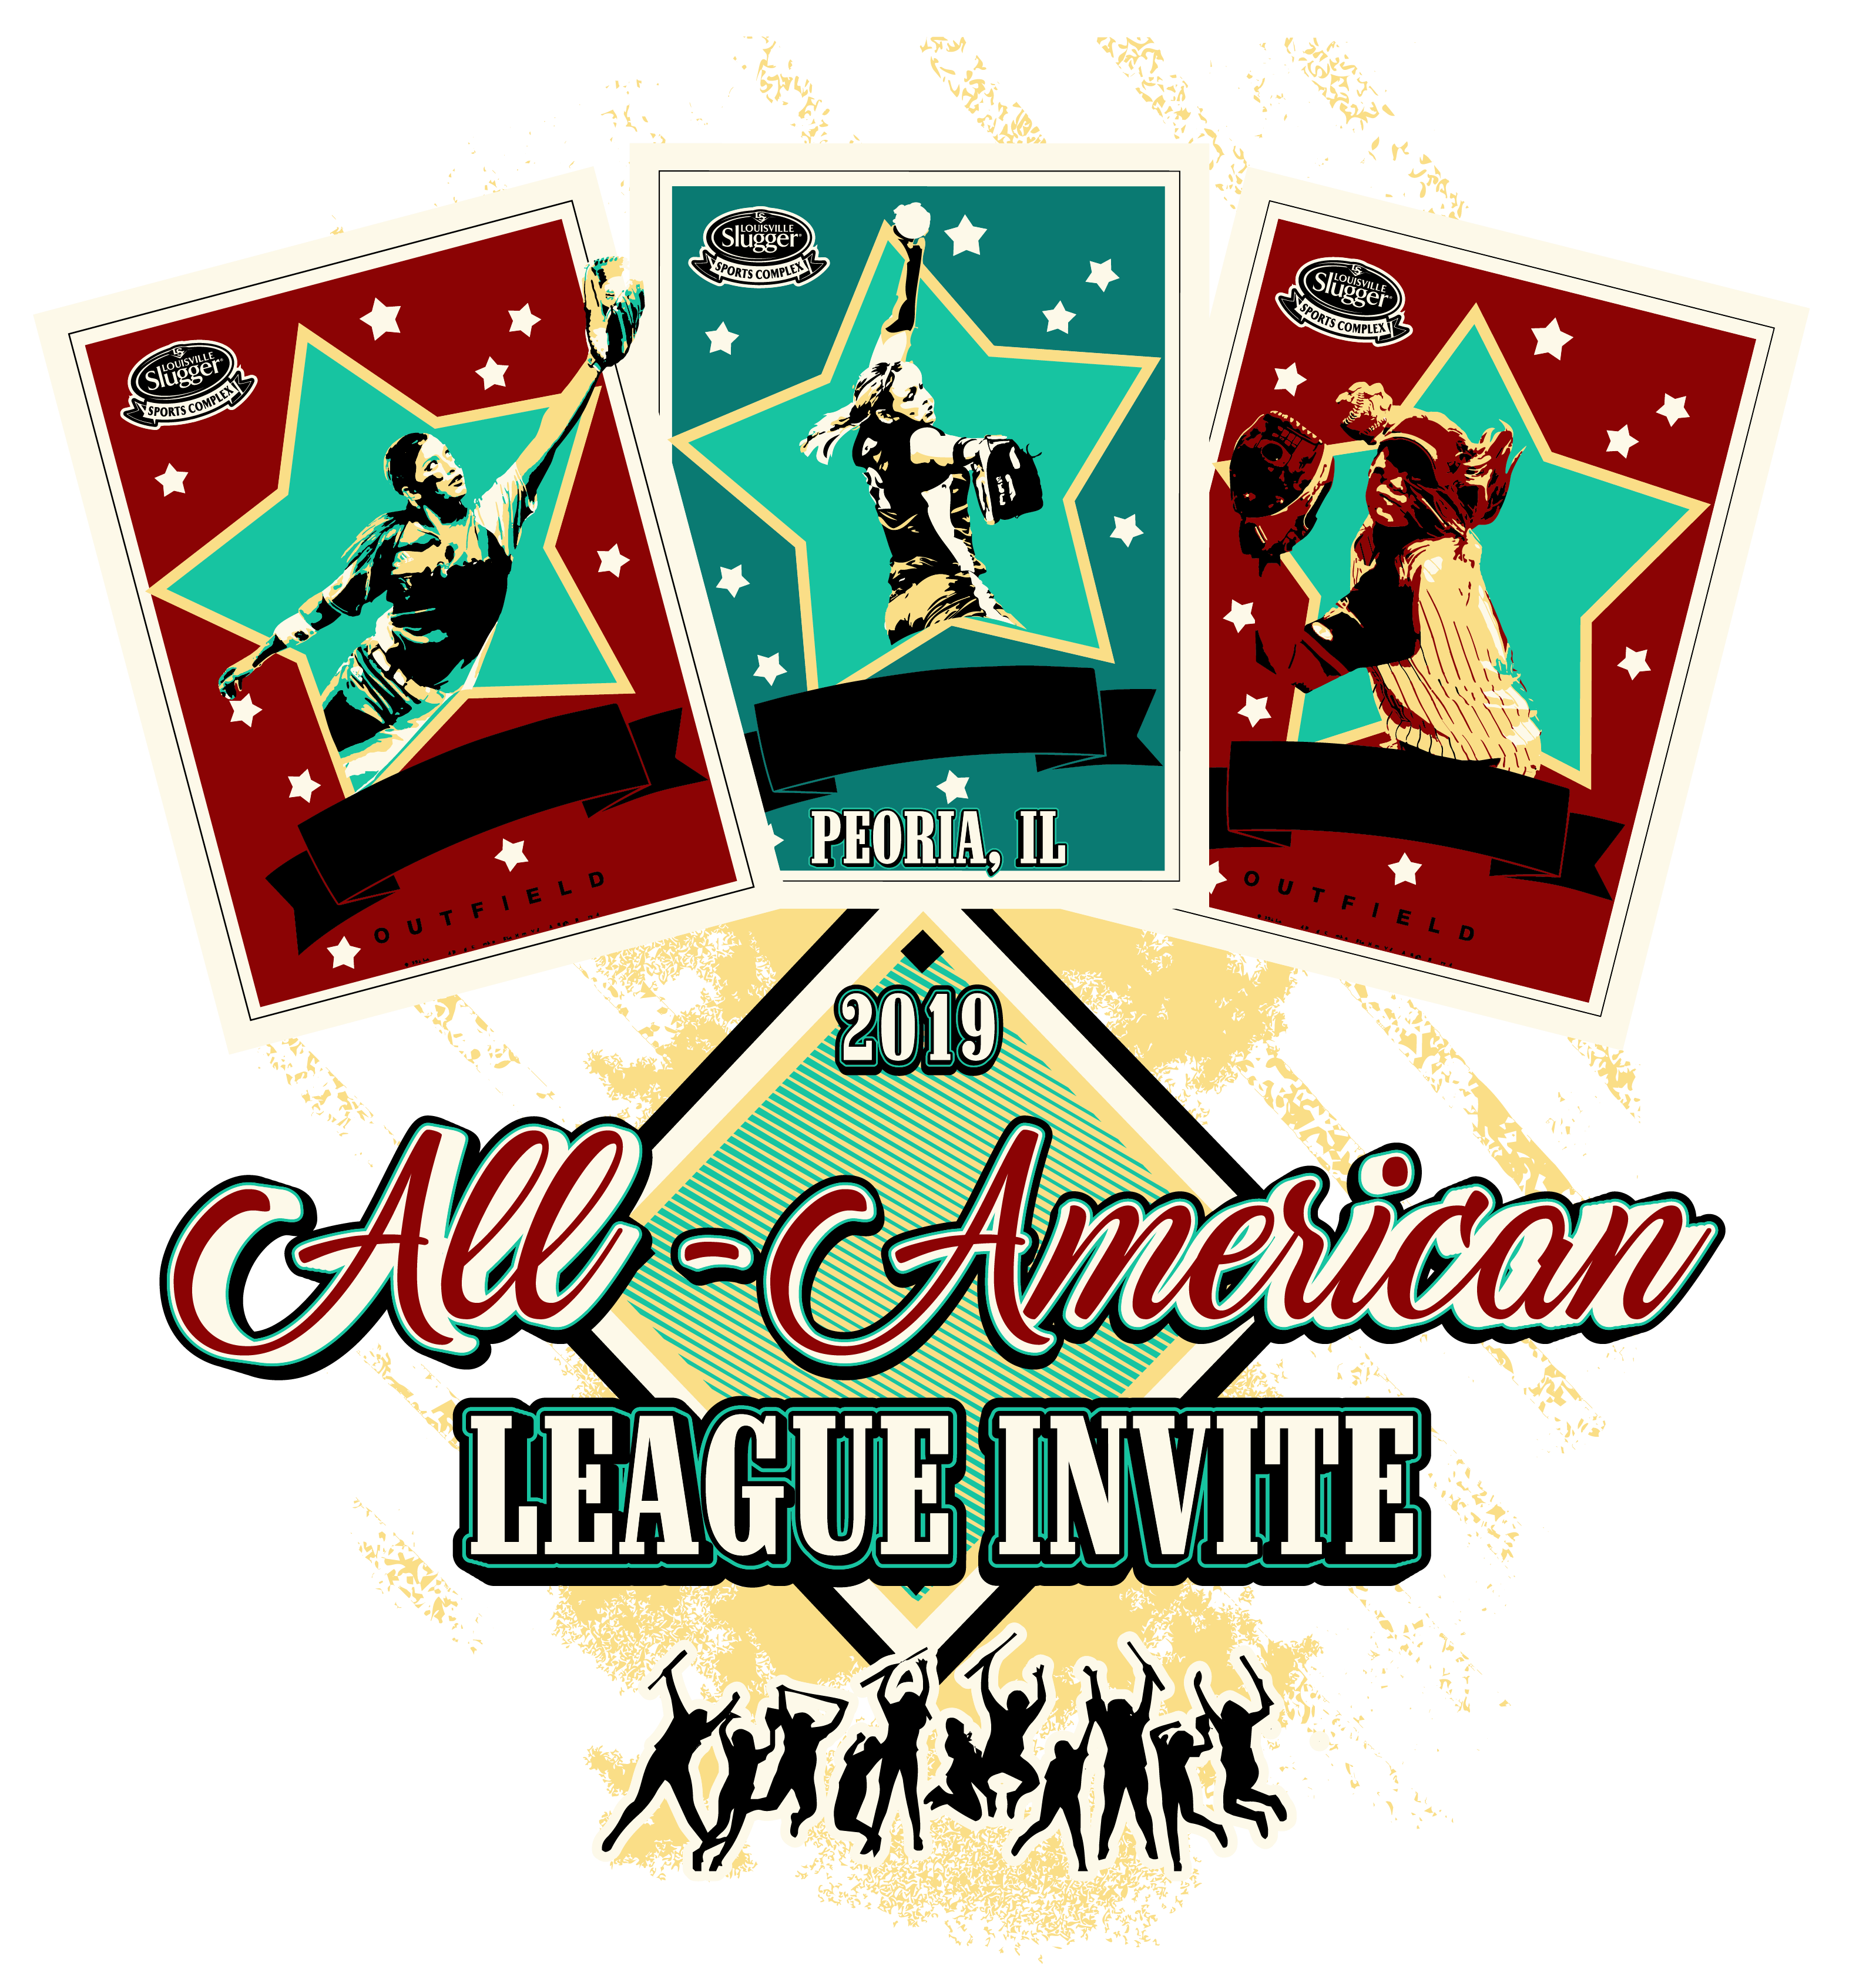 All-American League Invite